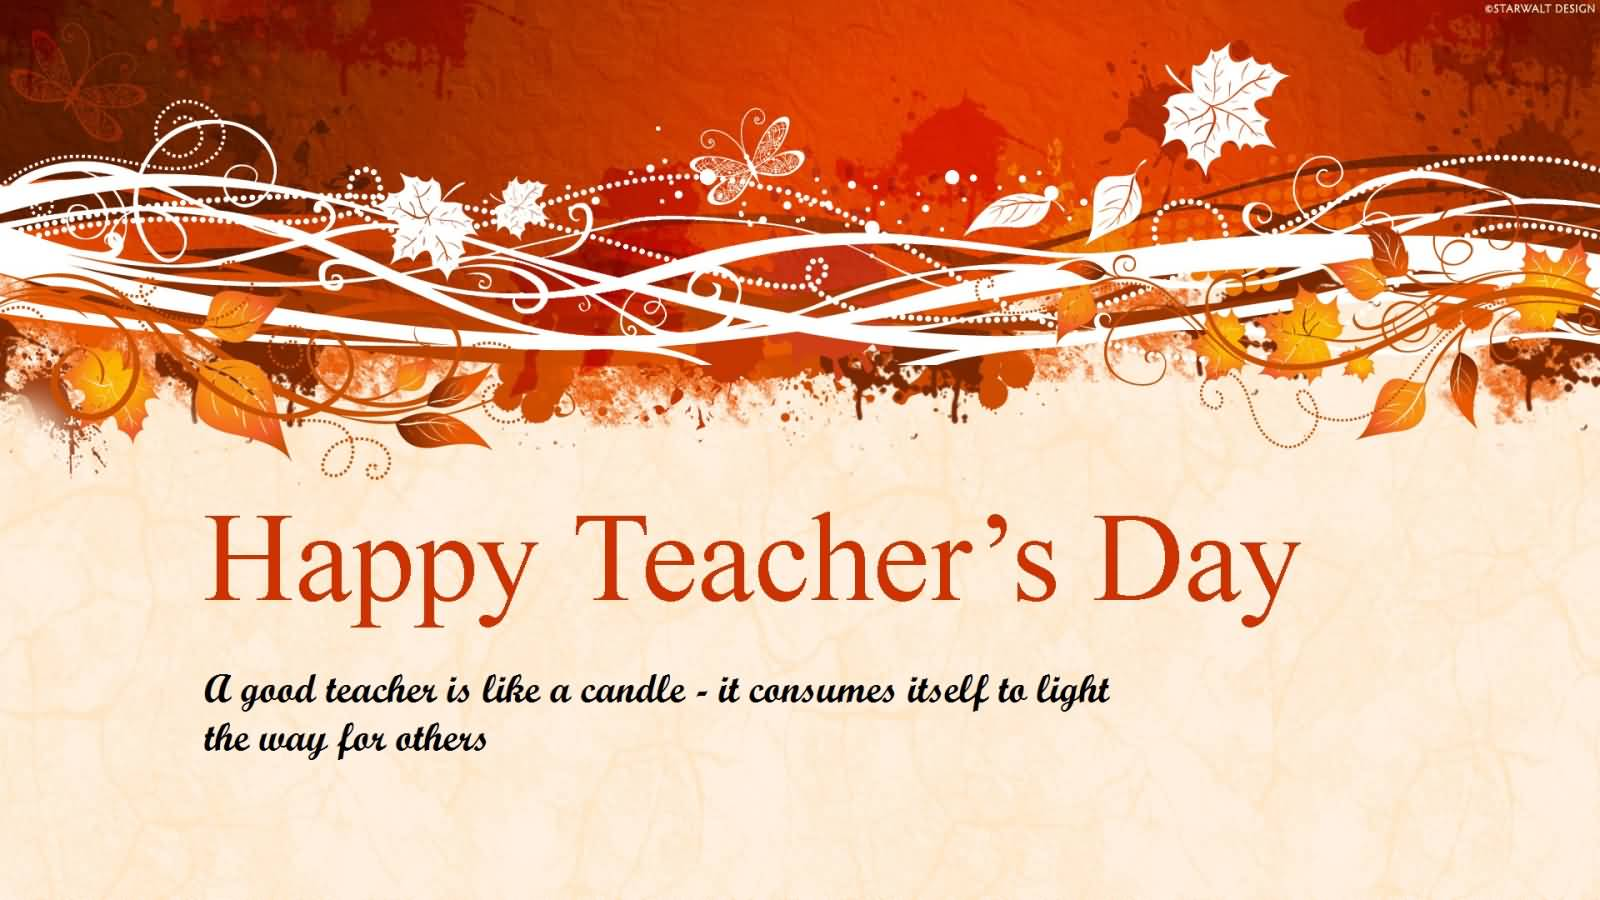 A Good Teacher Is Like A Candle Teacher's Day Greetings Image